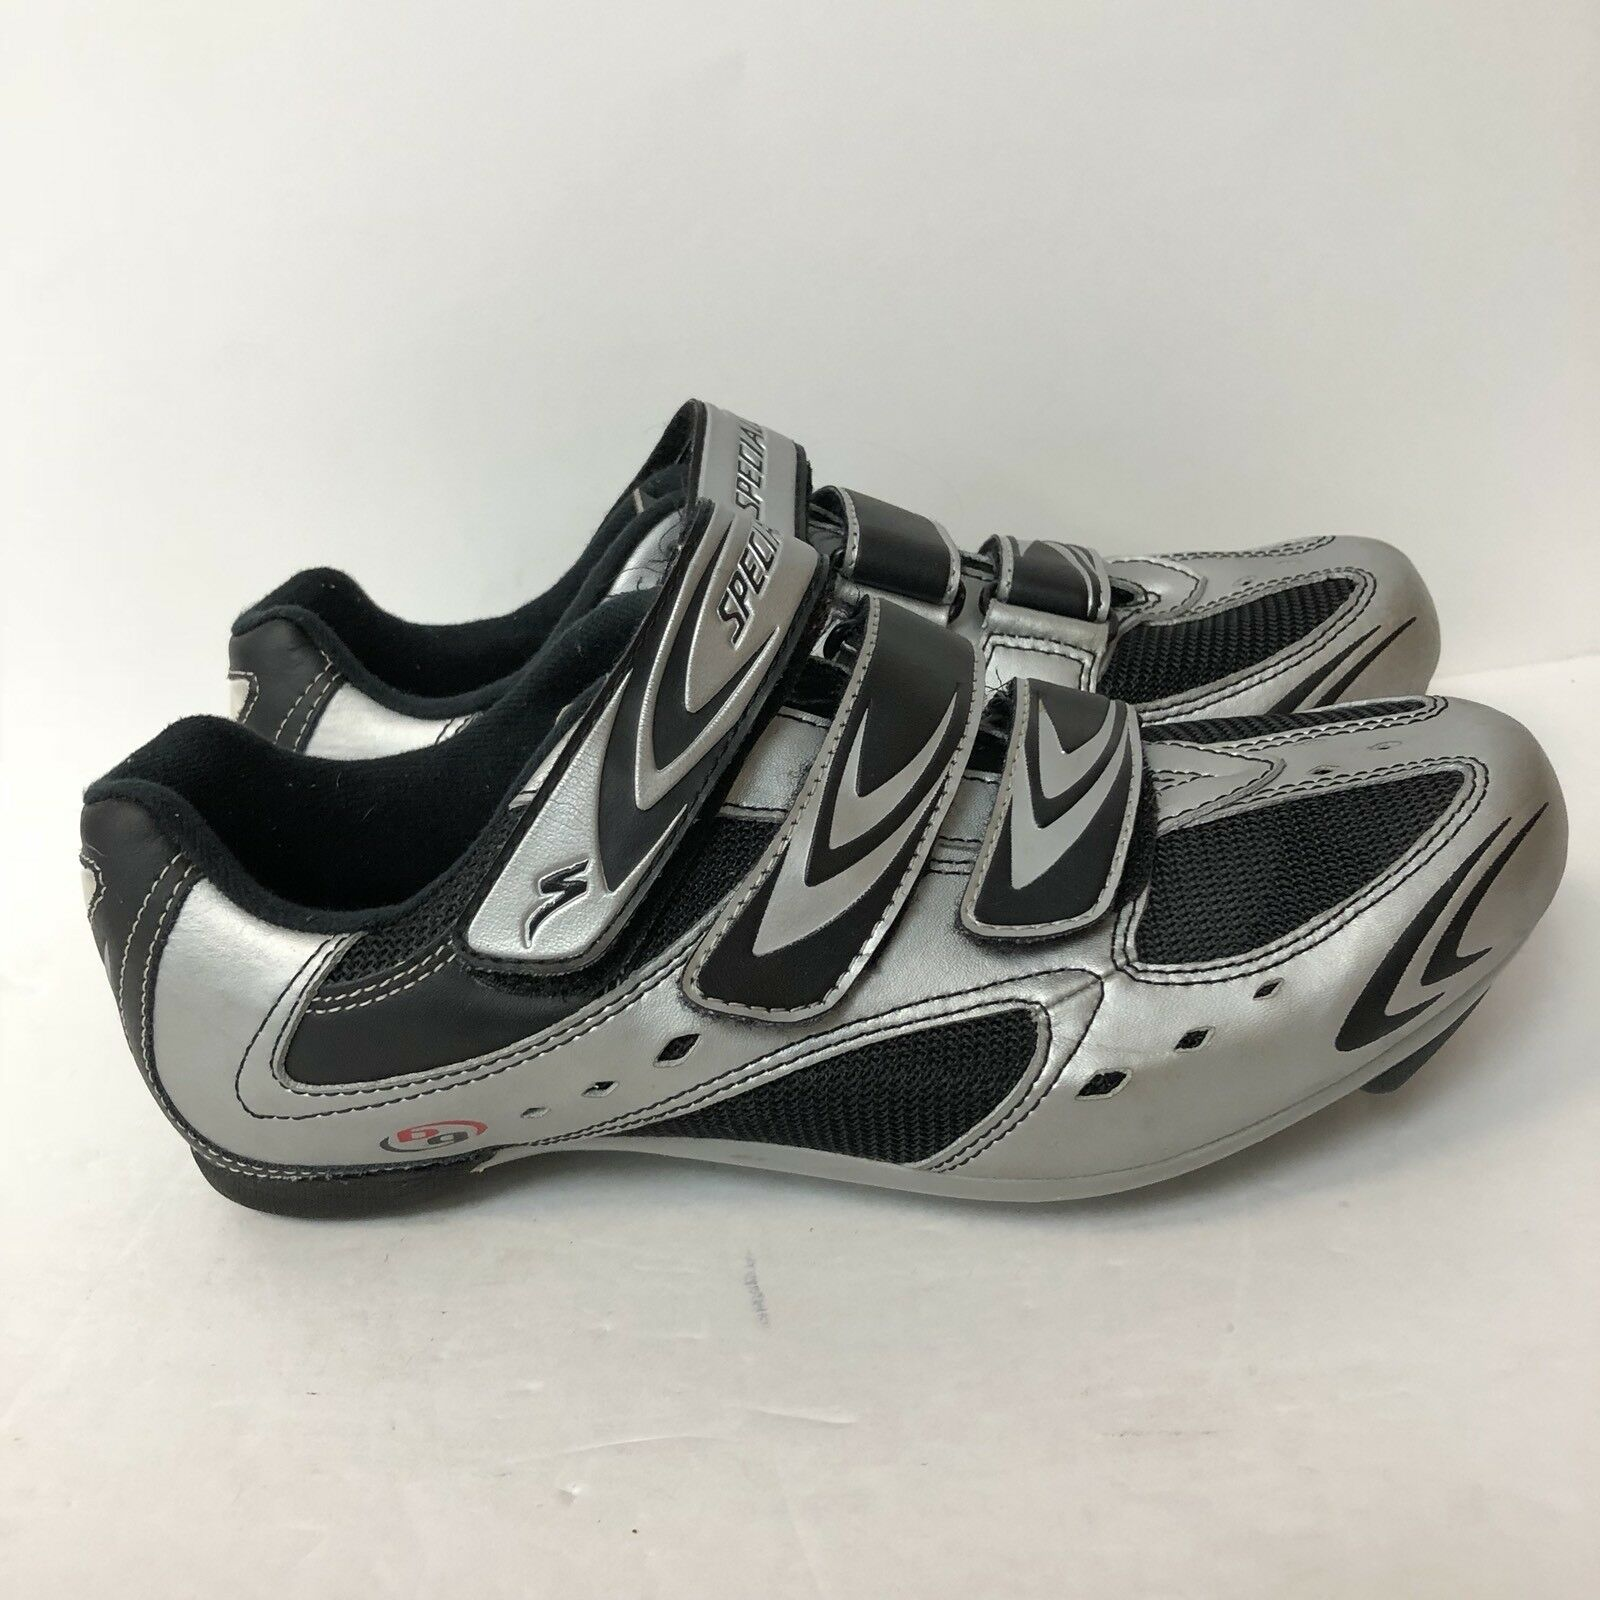 Specialized cycling scarpe Uomo Size Size Size 8.5 Great Condition 0bc1ac